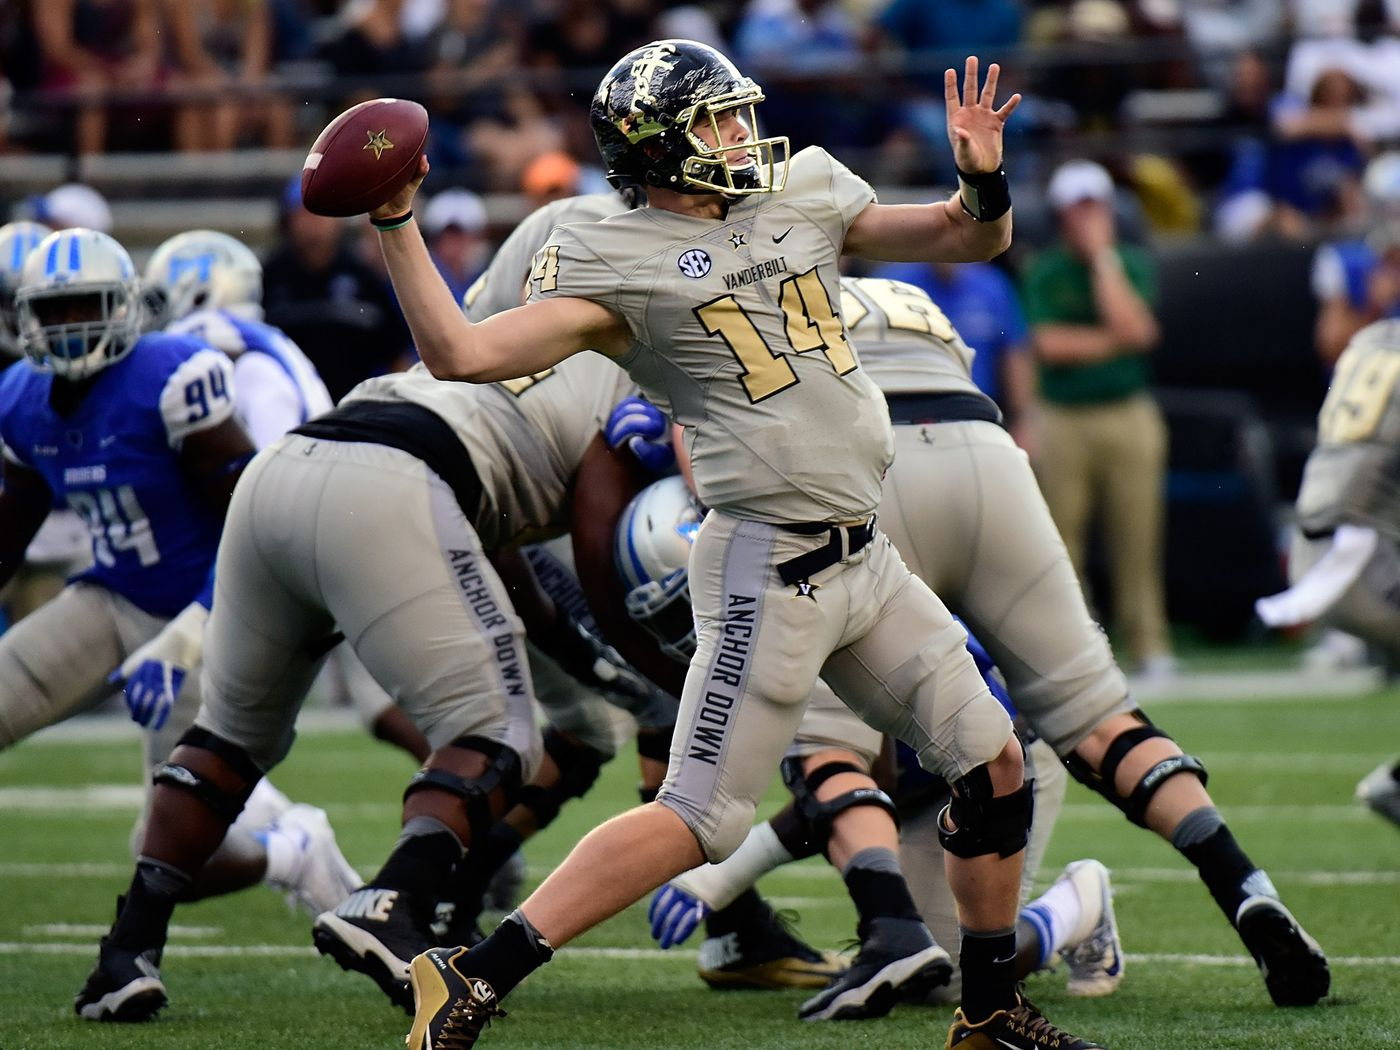 Florida Vs Vanderbilt Game Time TV Schedule How To Watch Online Odds And Preview Team Speed Kills